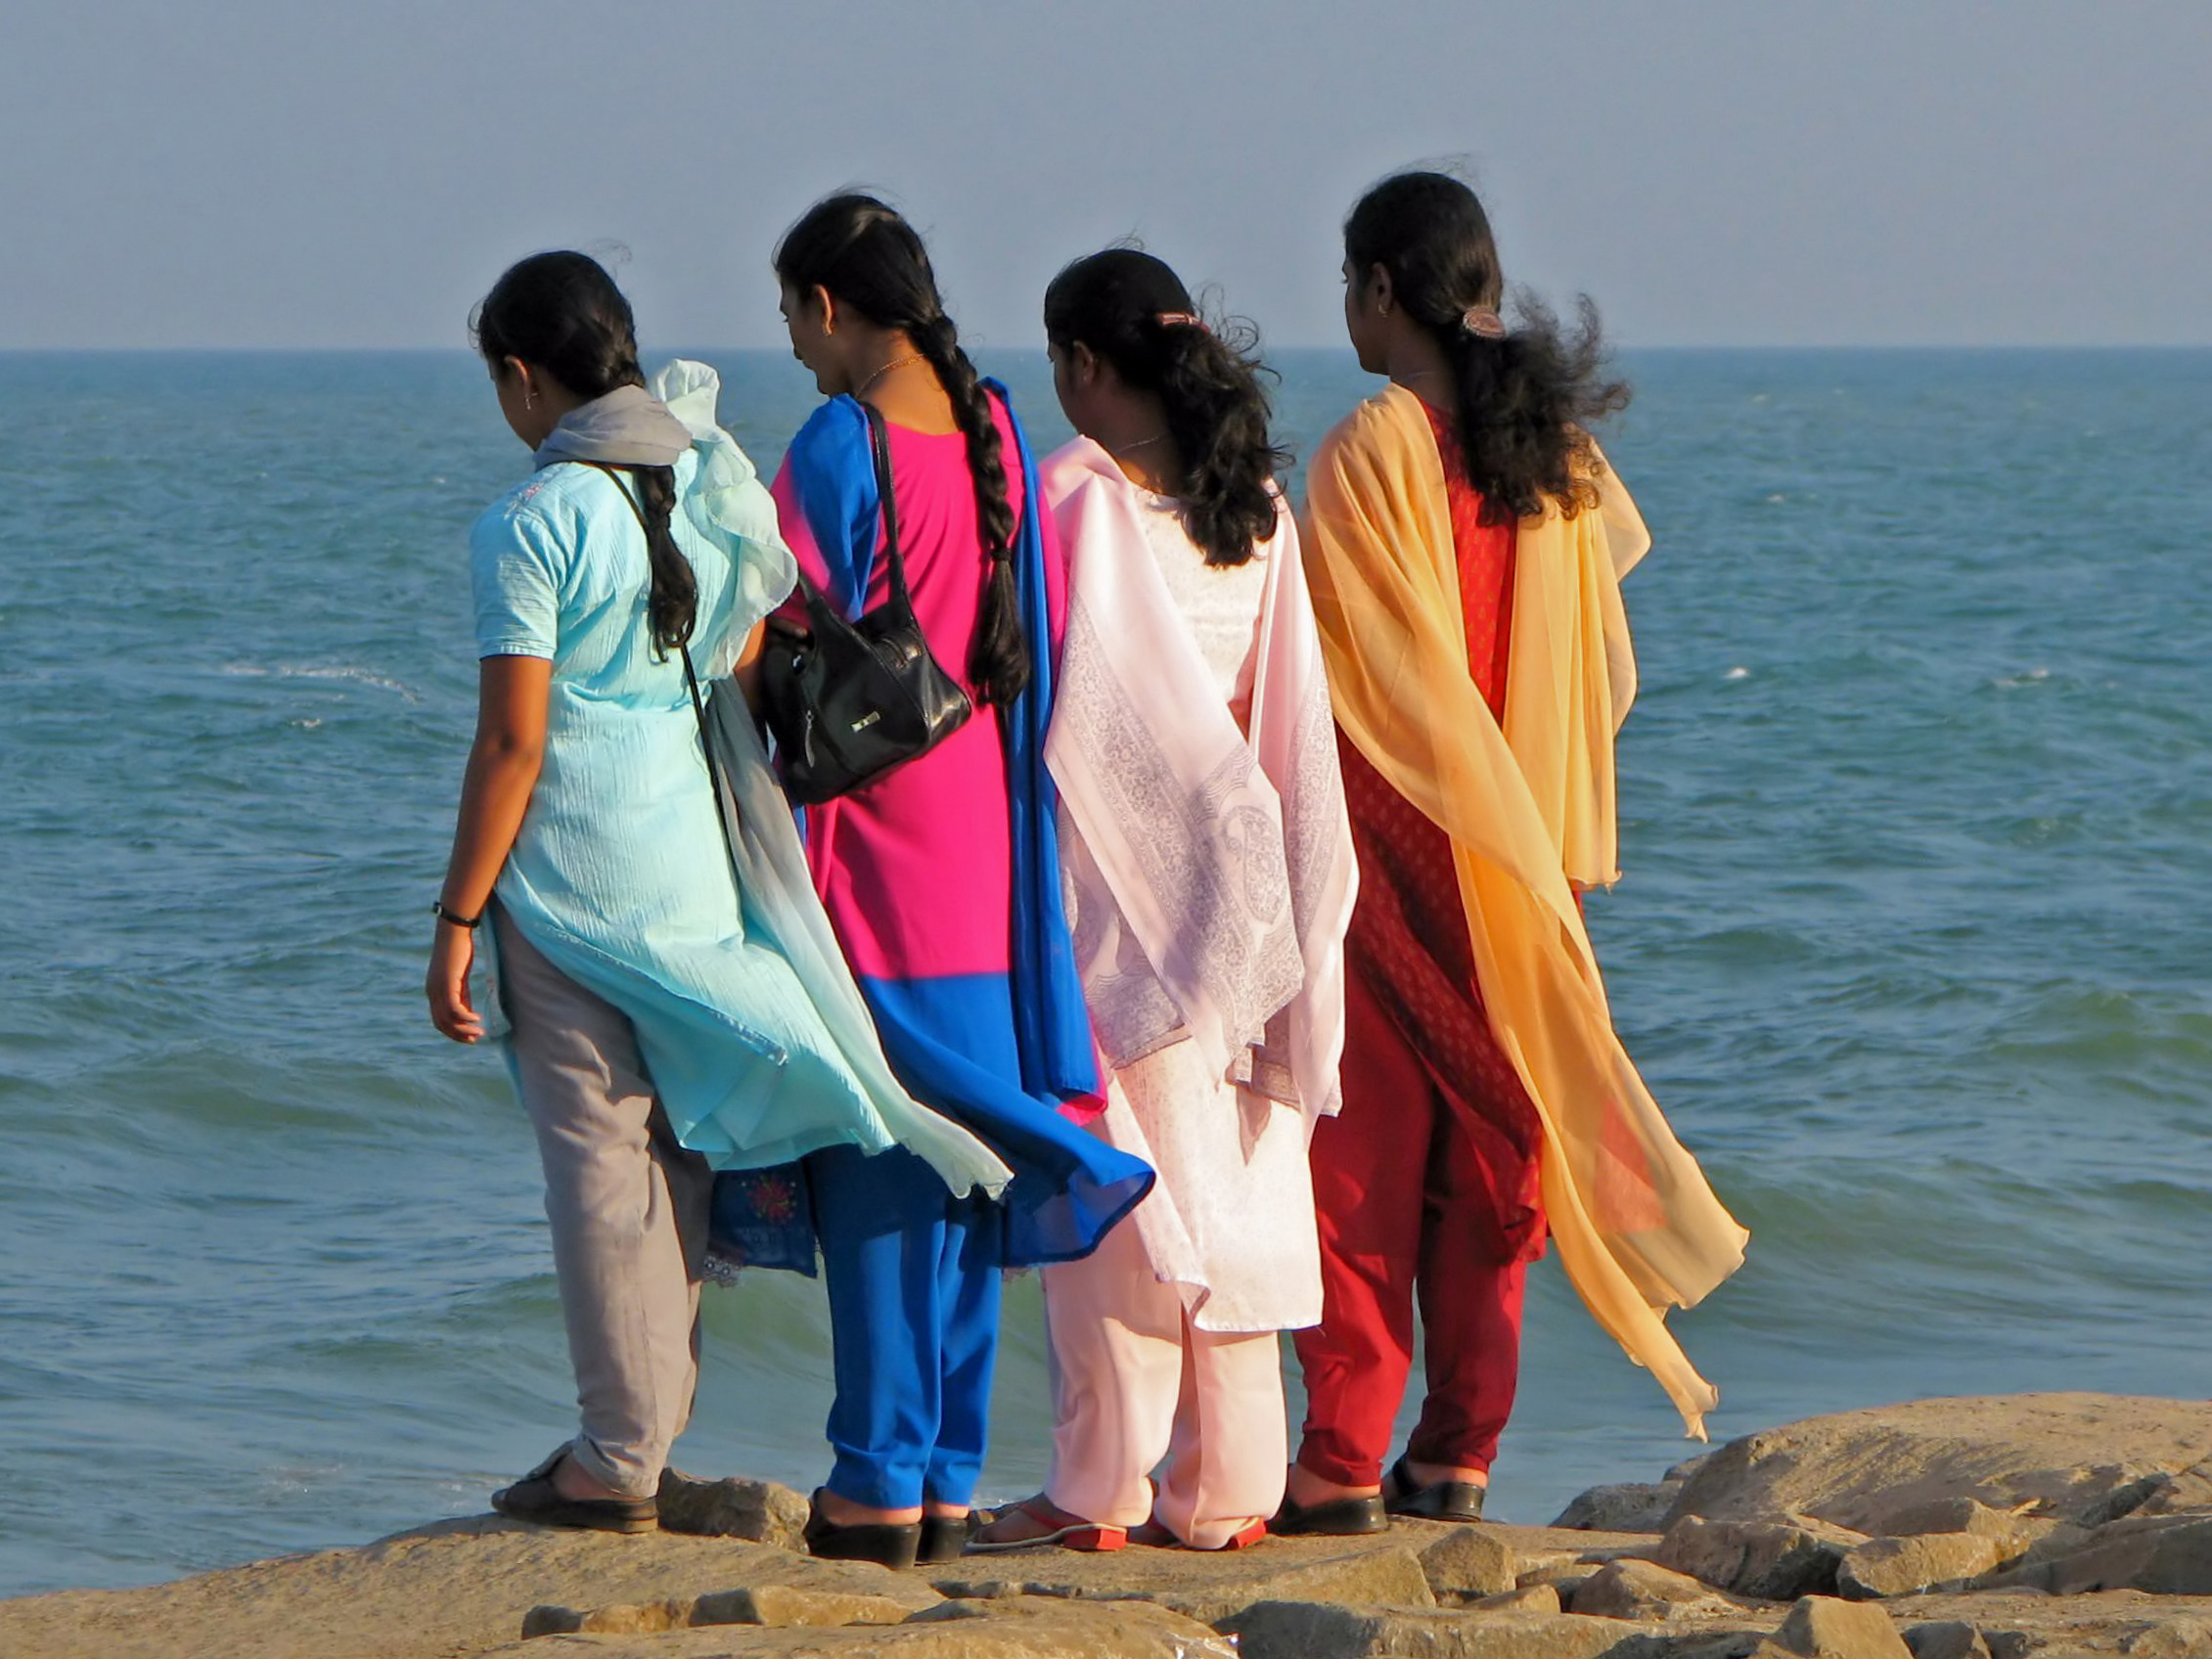 Women_of_Puducherry.jpg (2261×1696)